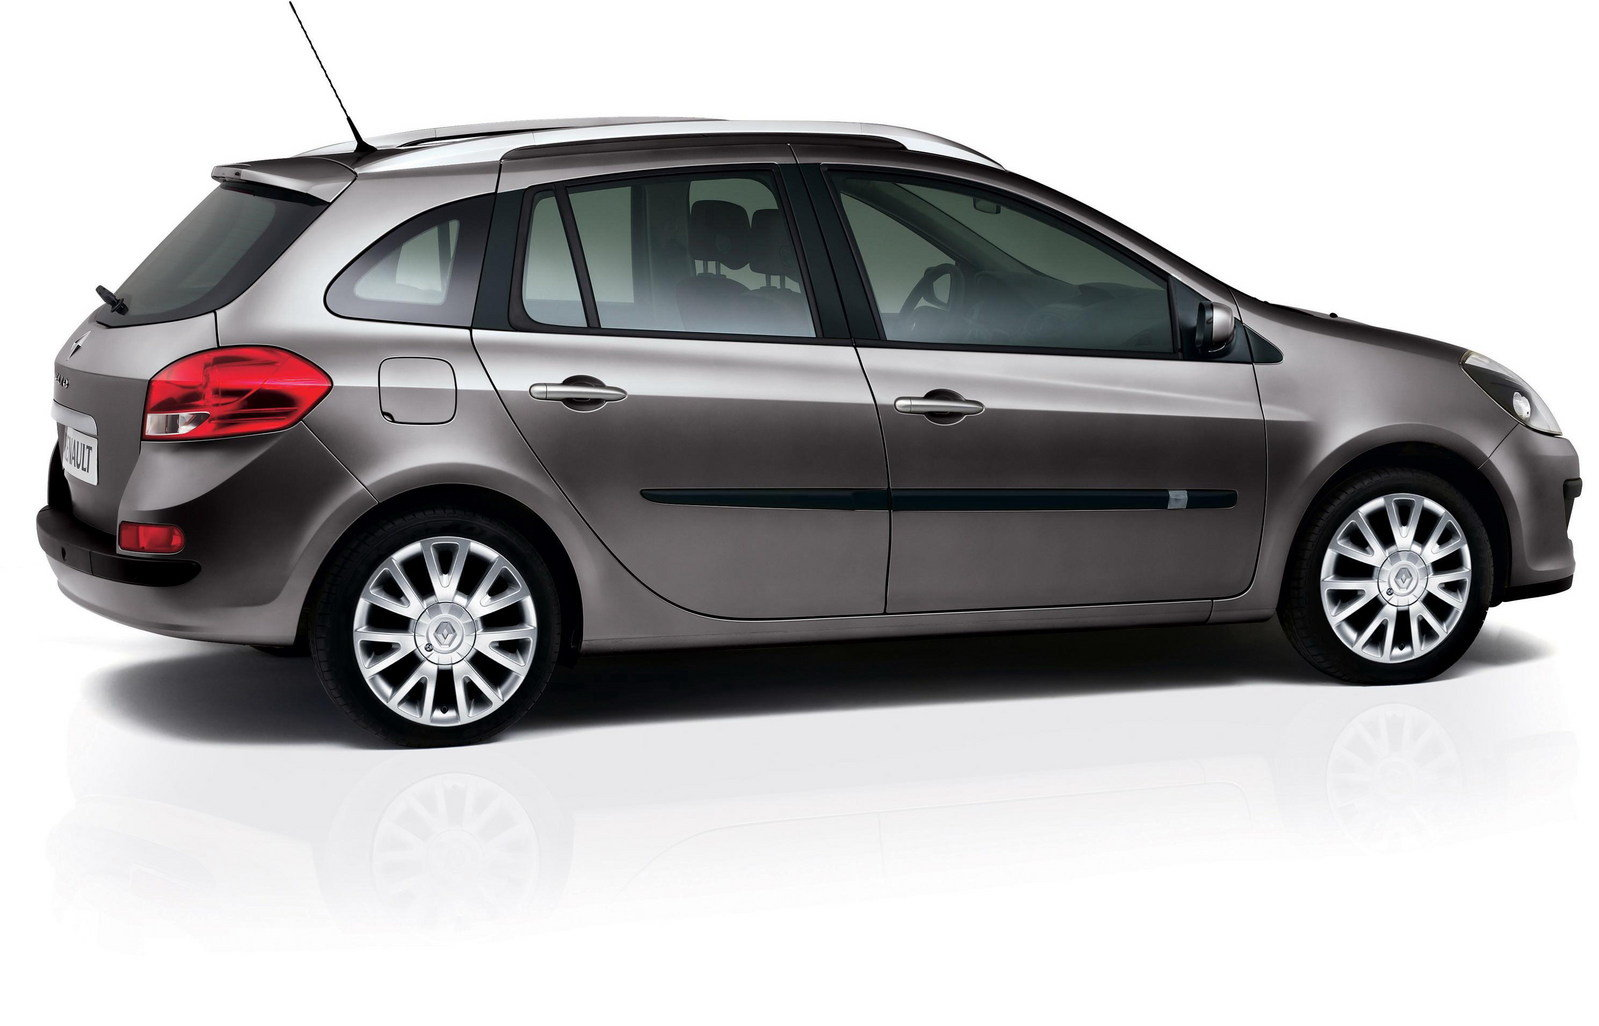 2009 renault clio estate exception picture 269428 car review top speed. Black Bedroom Furniture Sets. Home Design Ideas